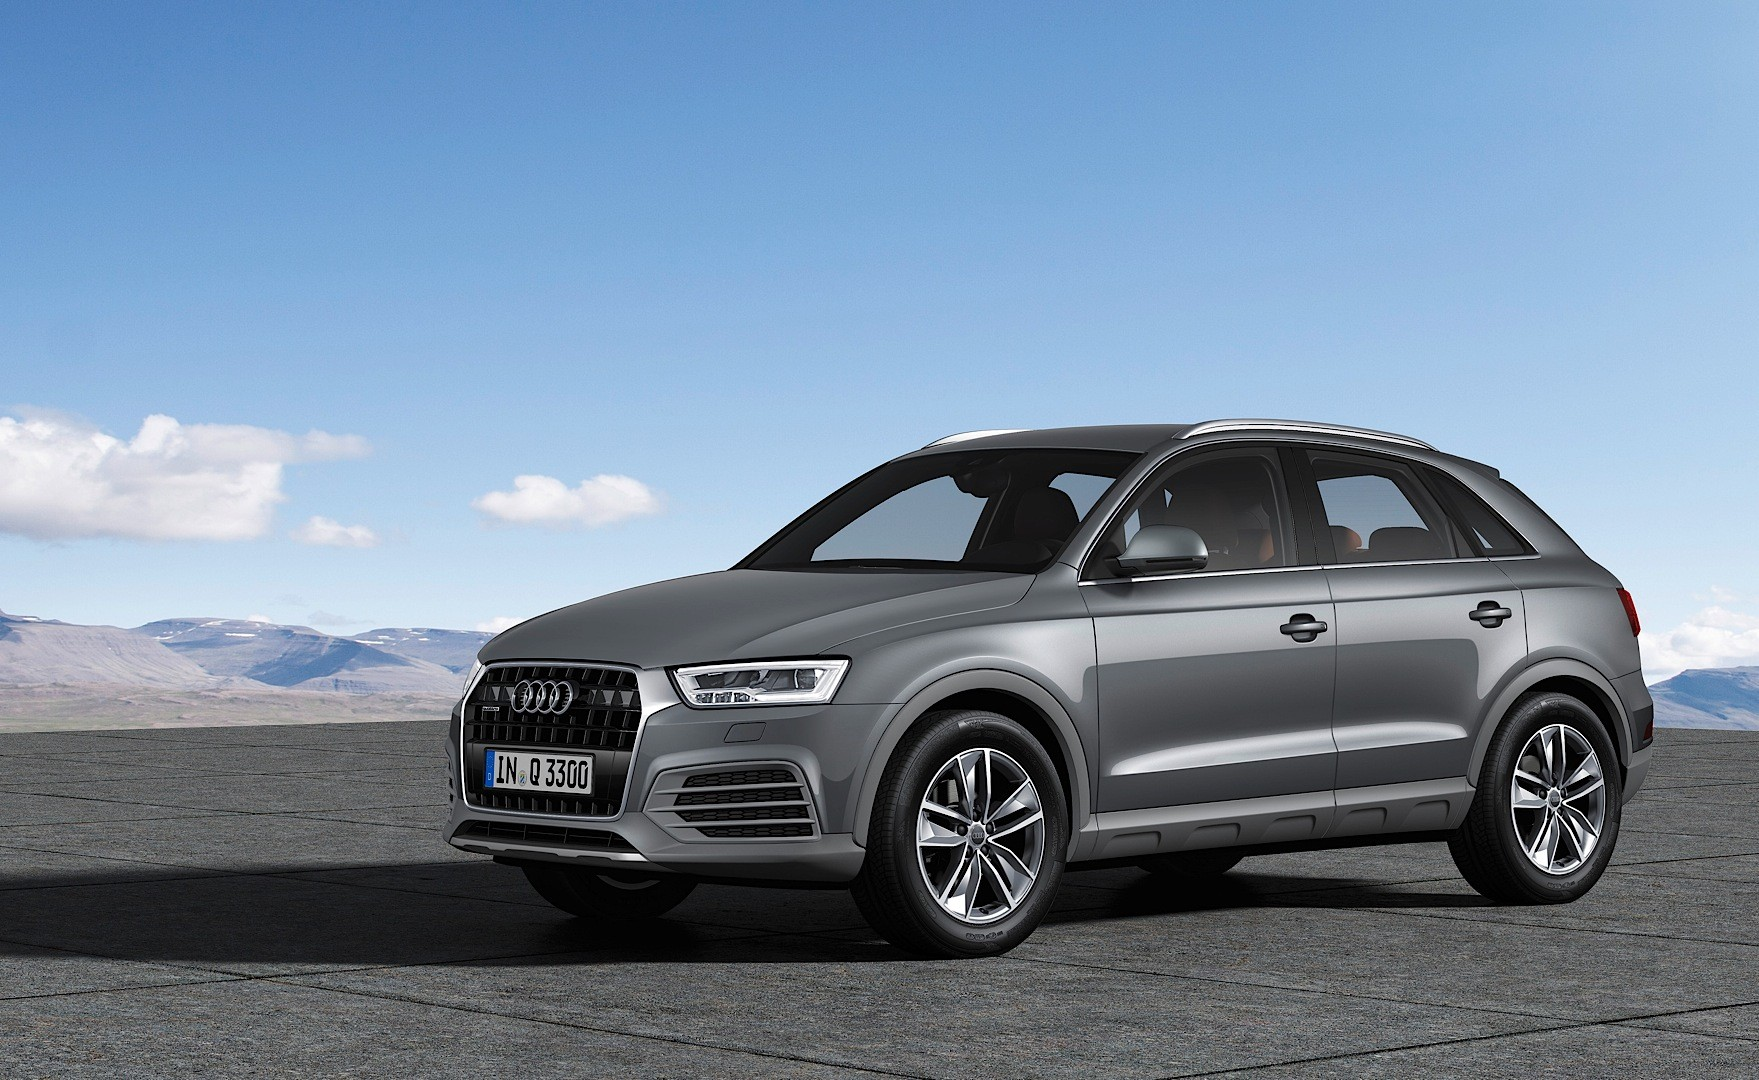 audi shares new 2015 q3 and rs q3 photos fresh colors new trim pieces autoevolution. Black Bedroom Furniture Sets. Home Design Ideas